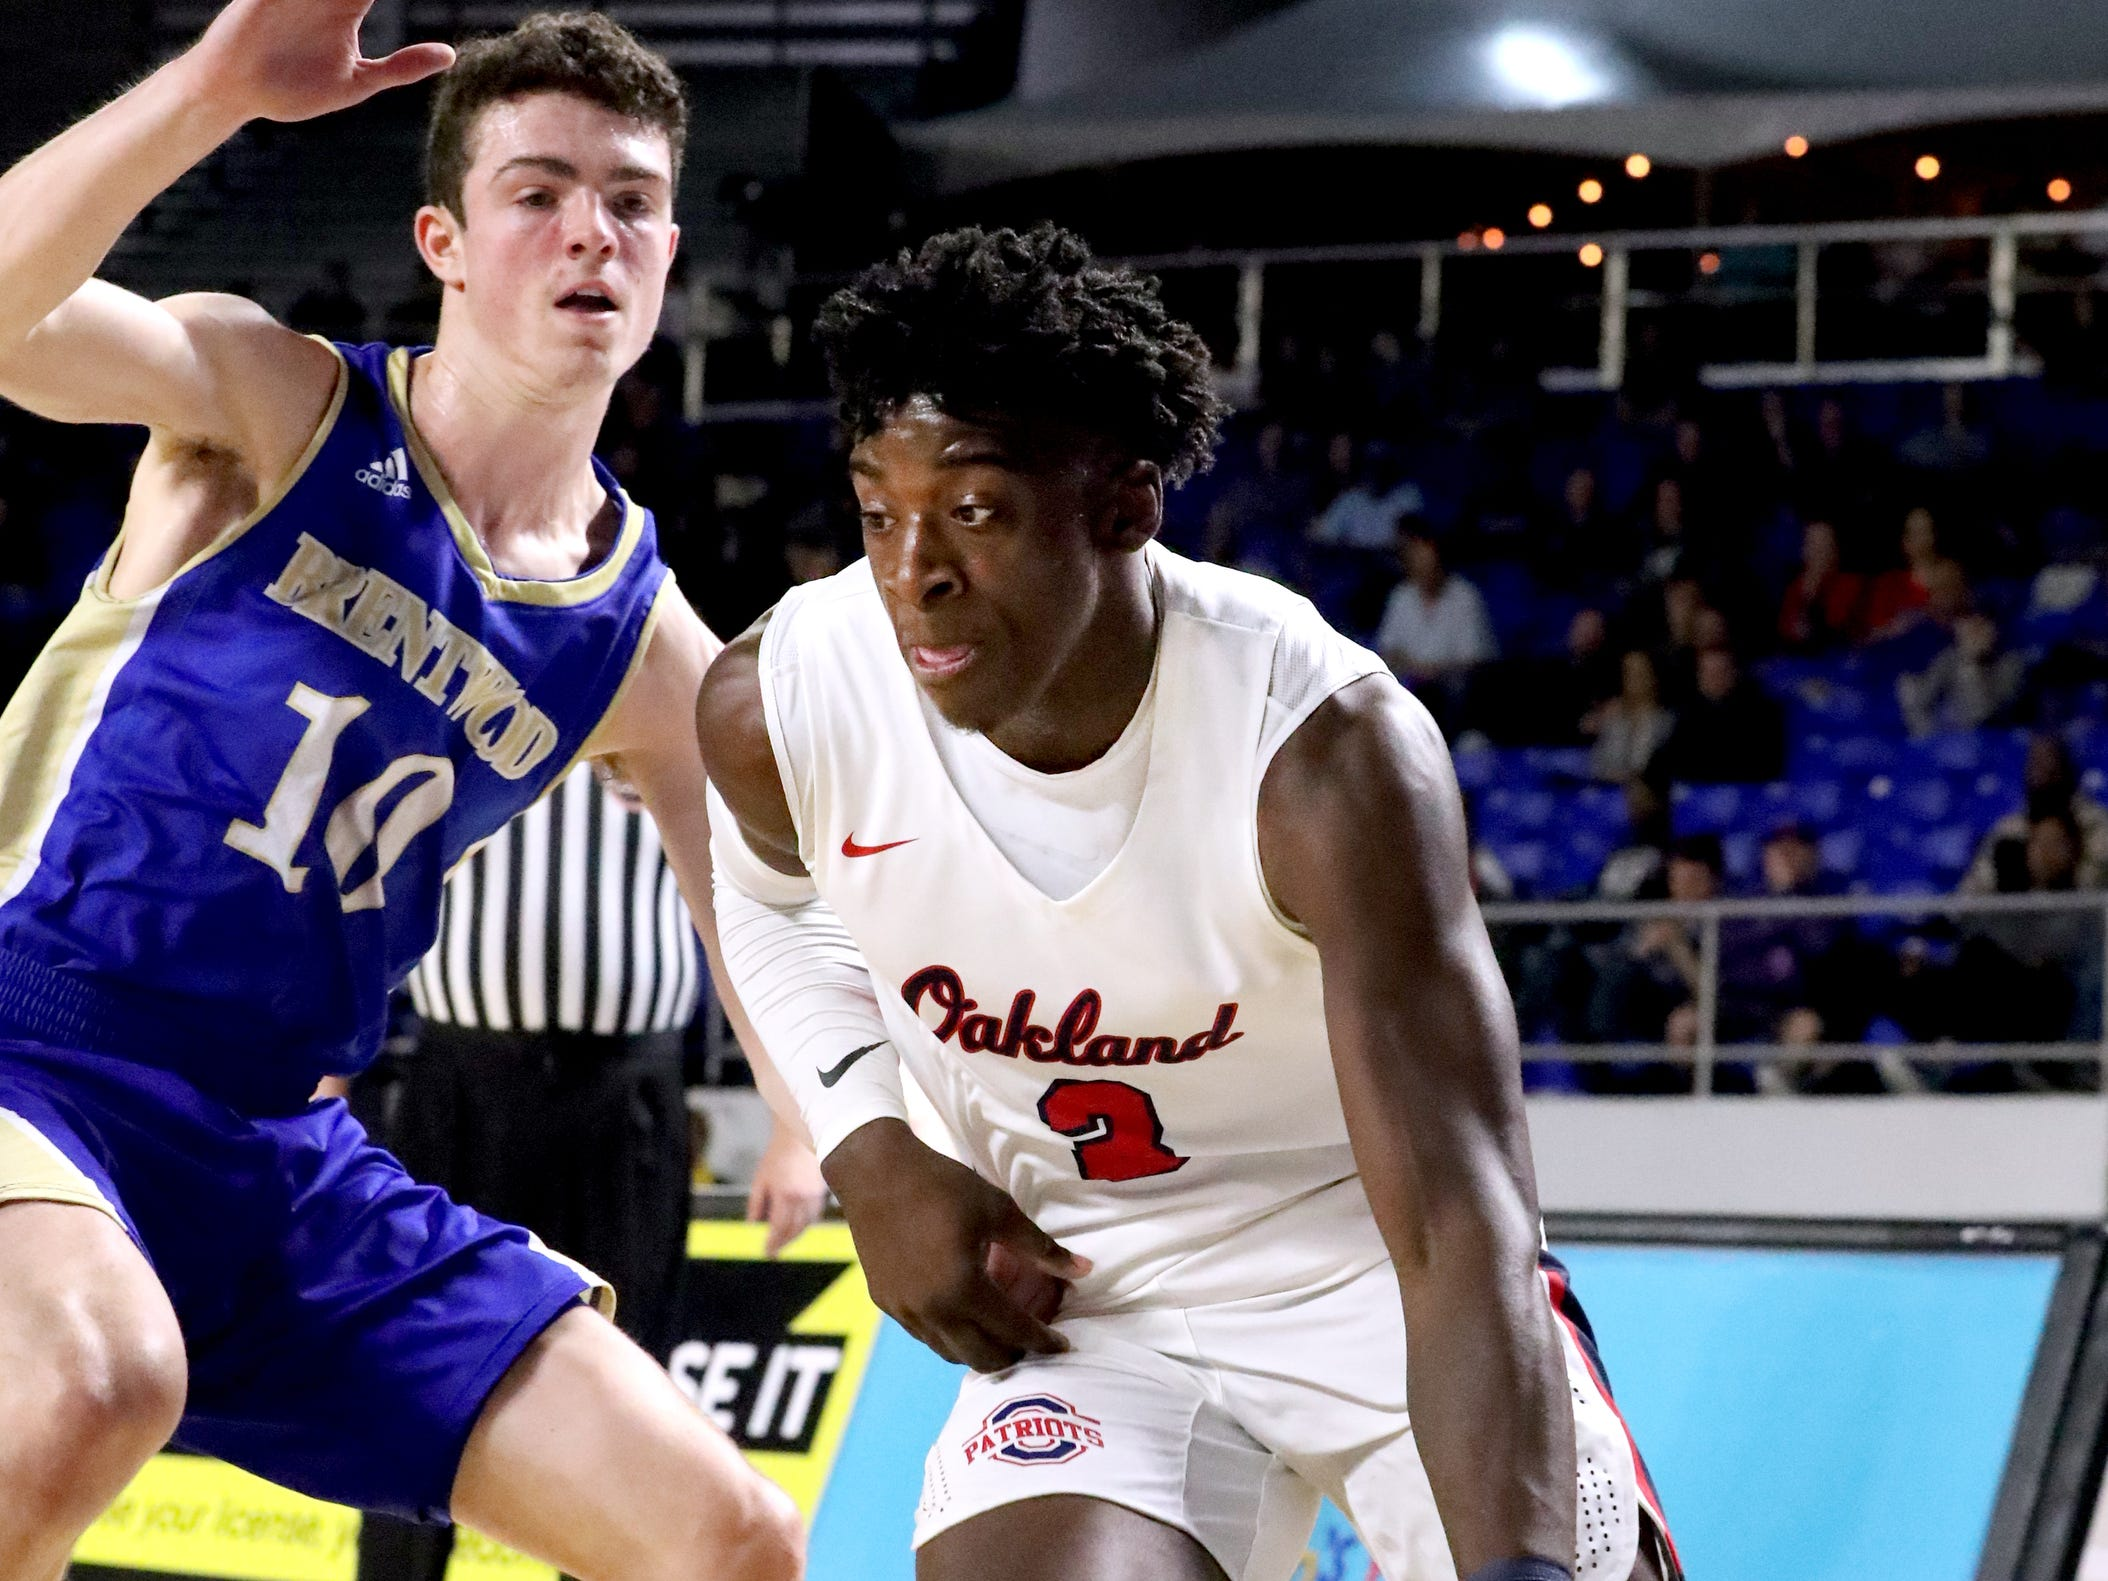 during the quarterfinal round of the TSSAA Class AAA Boys State Tournament, on Thursday, March 14, 2019, at Murphy Center in Murfreesboro, Tenn.